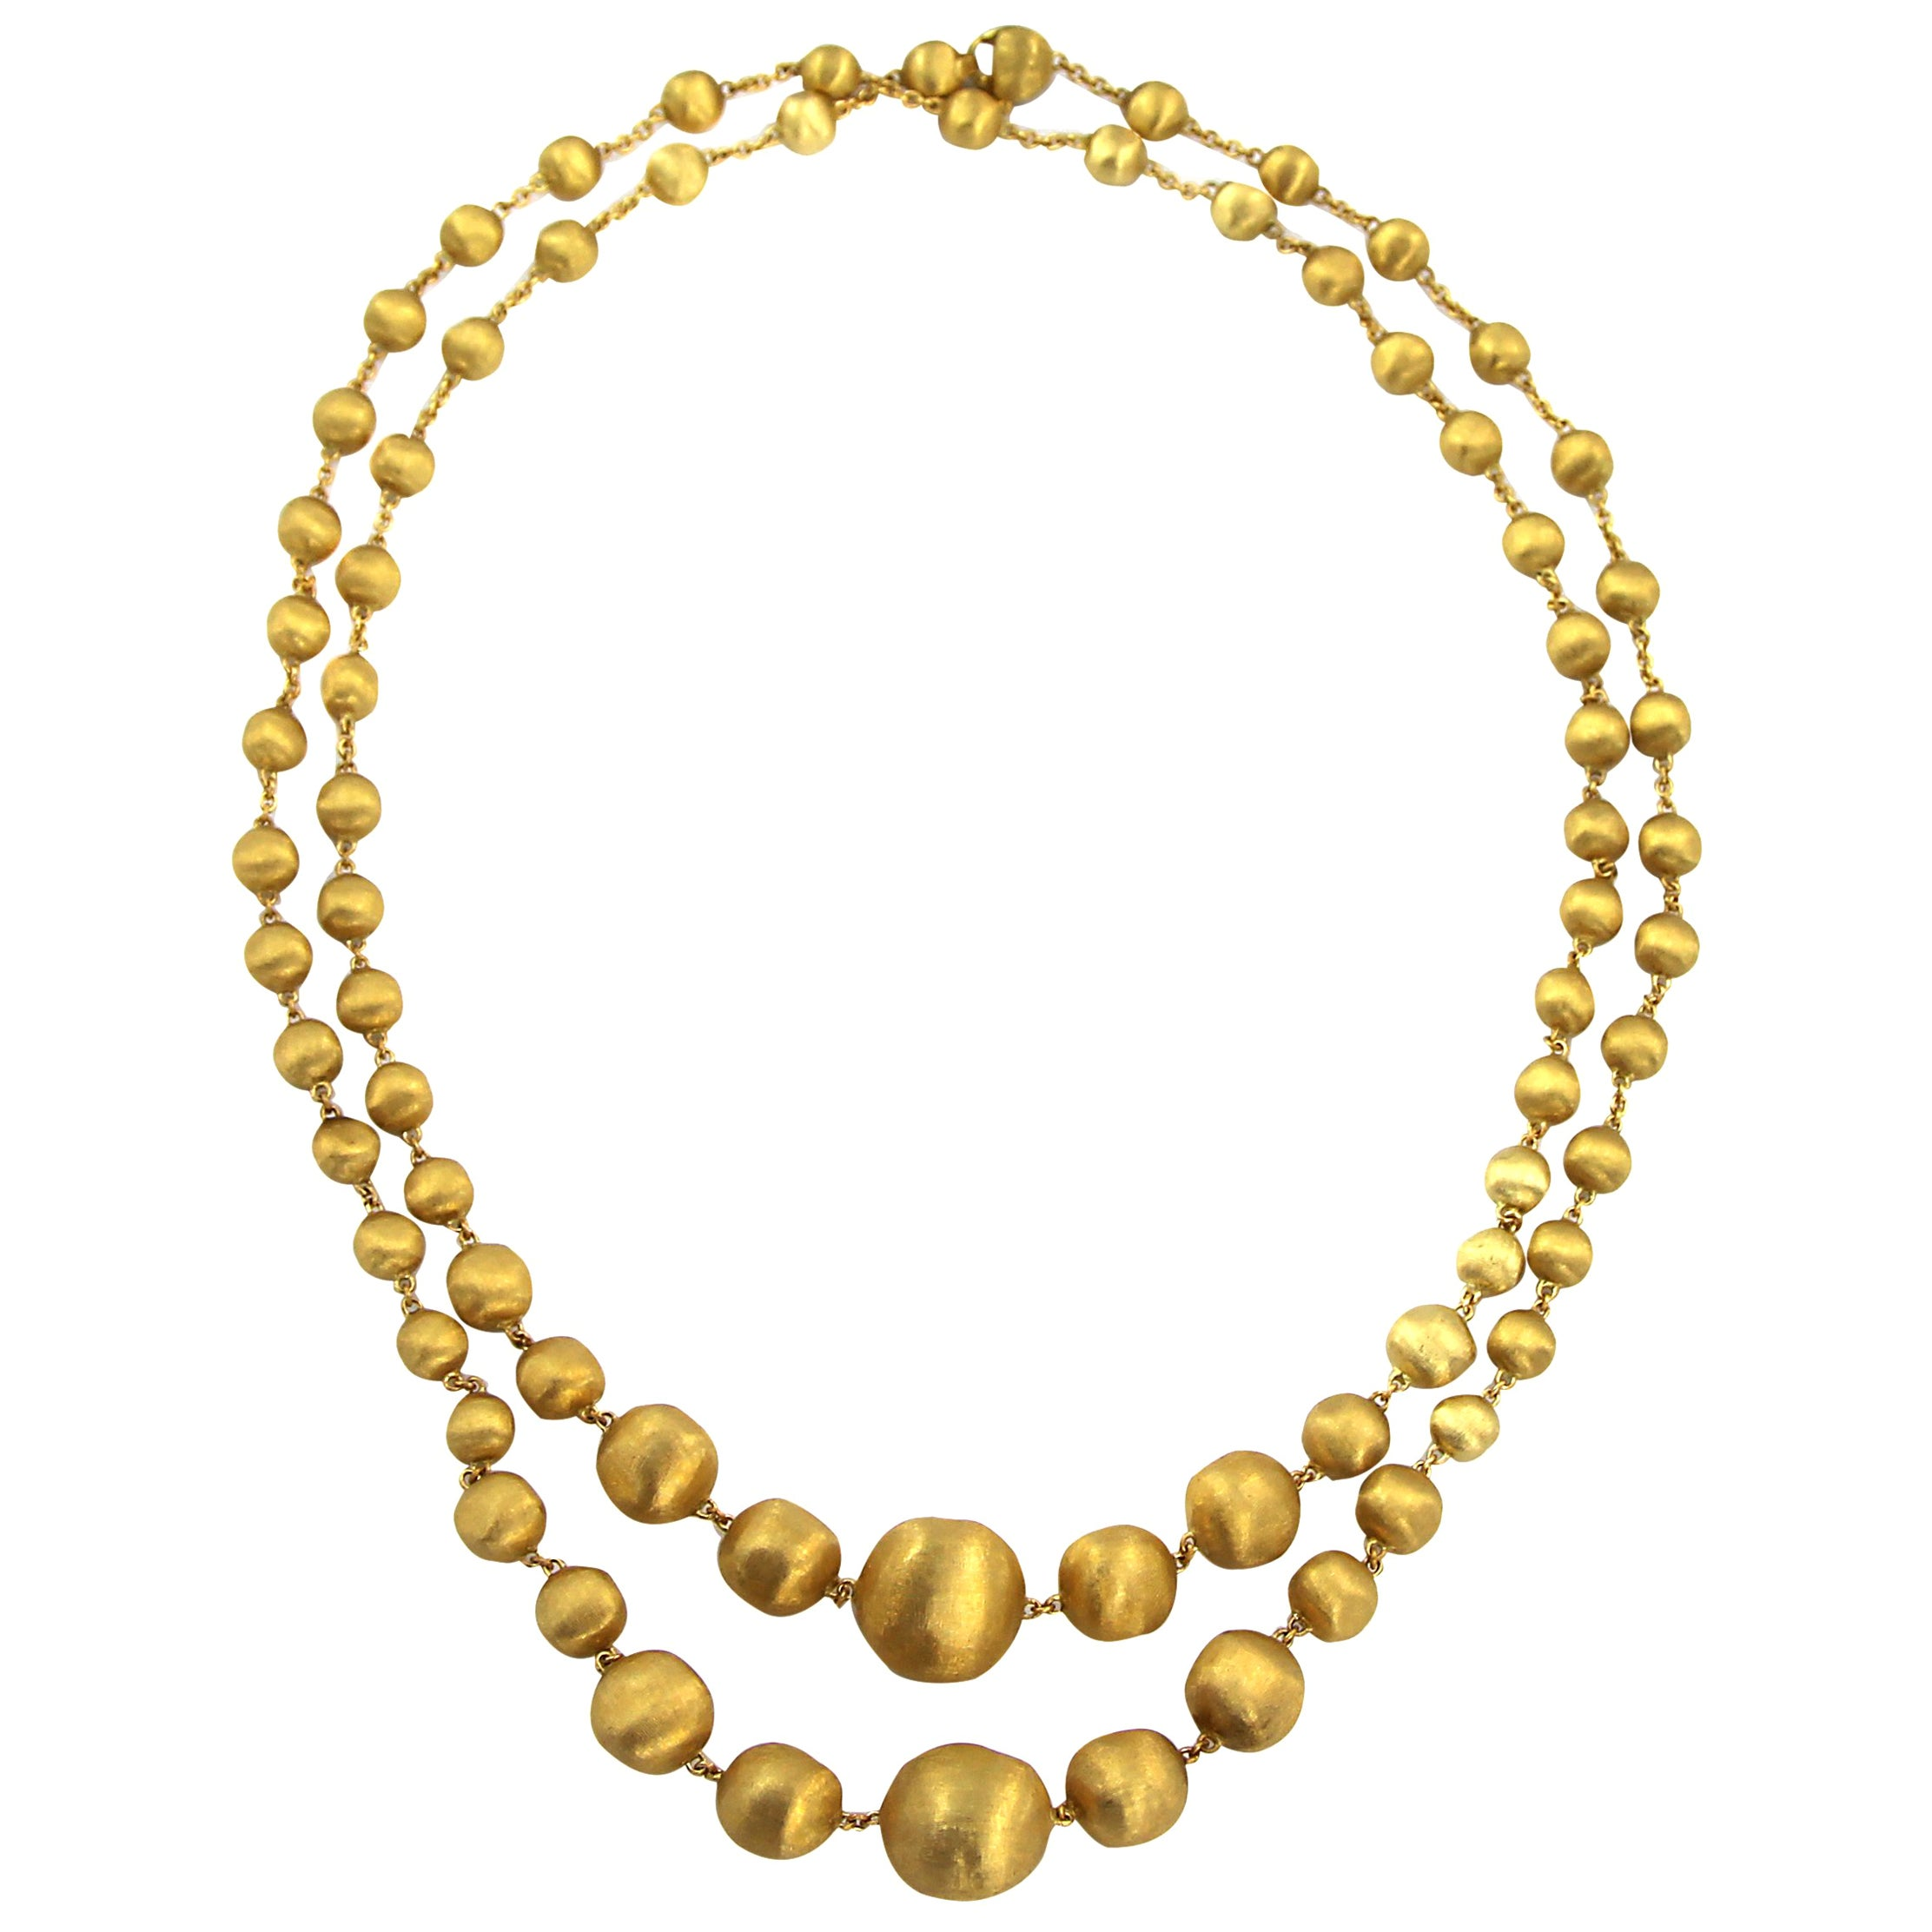 afaa037ba04525 Marco Bicego Africa 18 ct Gold Graduated Long Single, Double Wave Bead  Necklace at 1stdibs